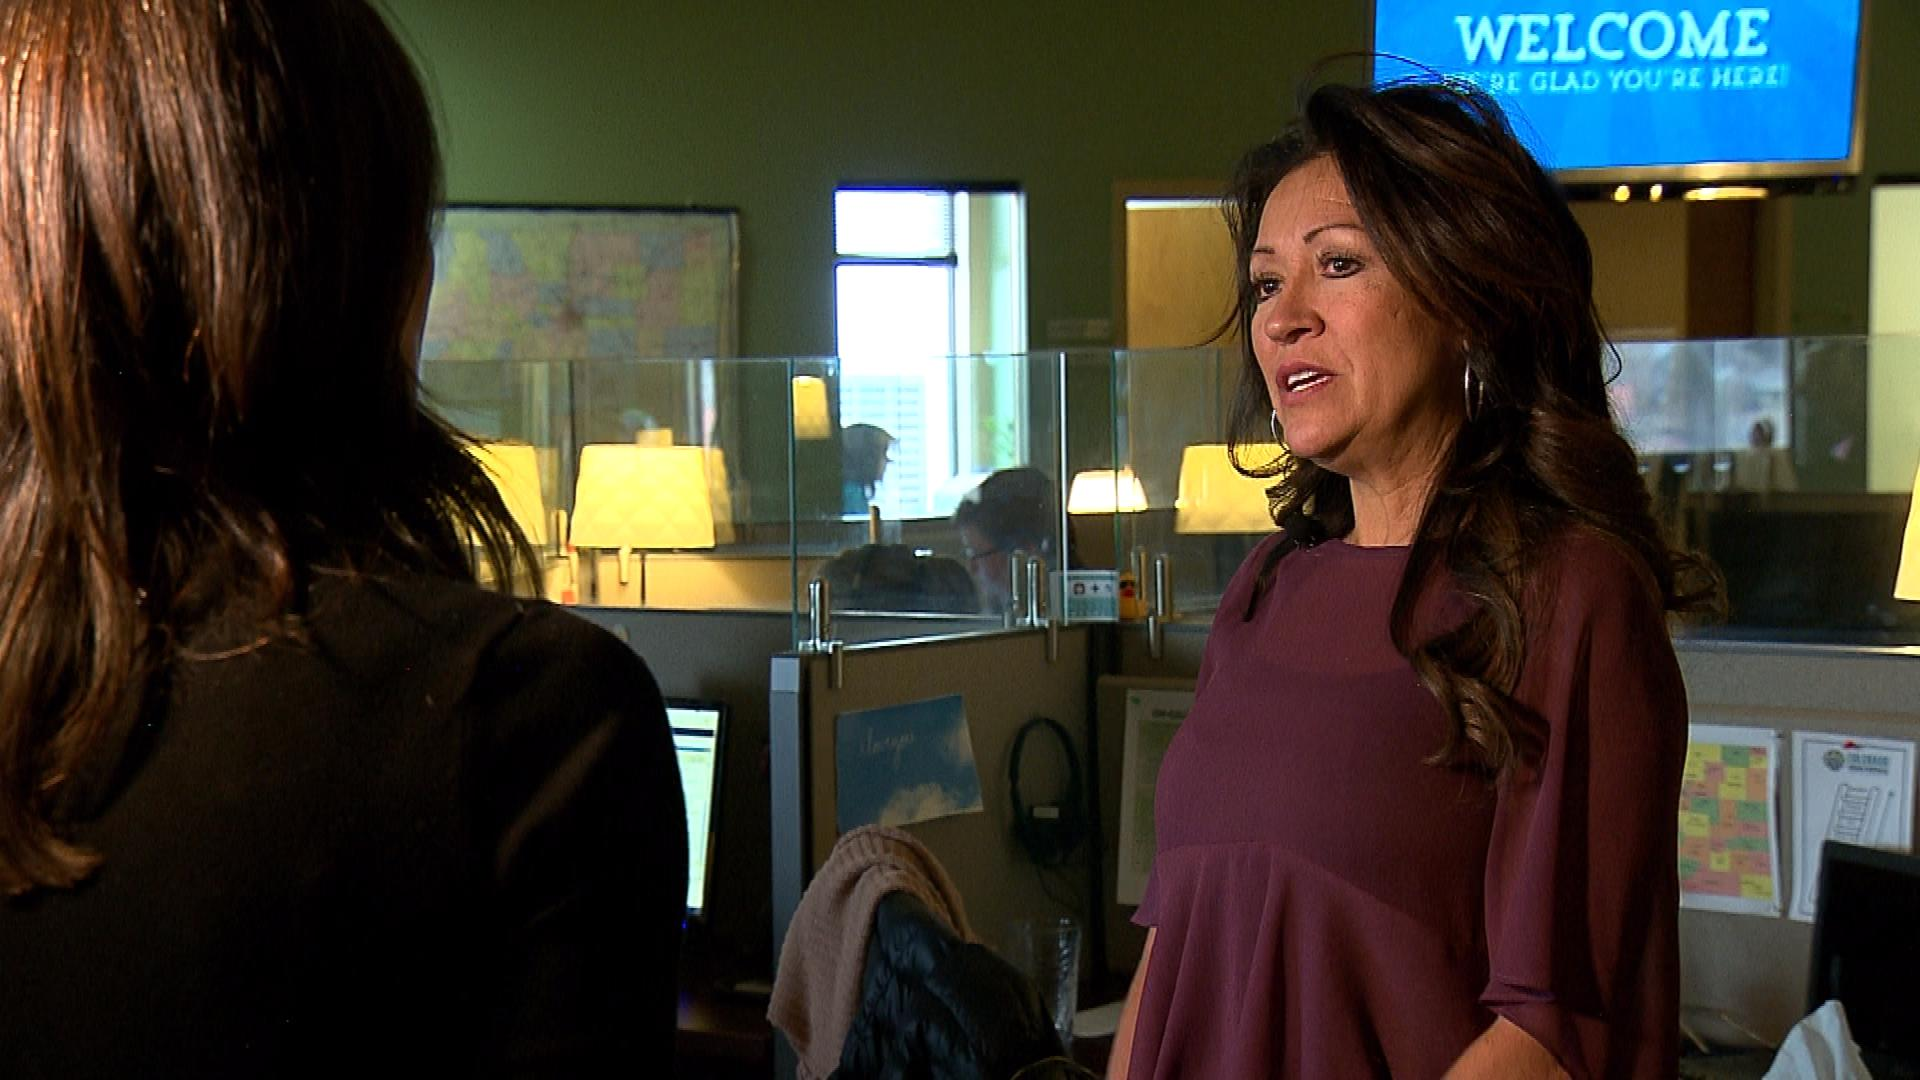 CBS4's Jamie Leary interviews Bev Marquez (credit: CBS)